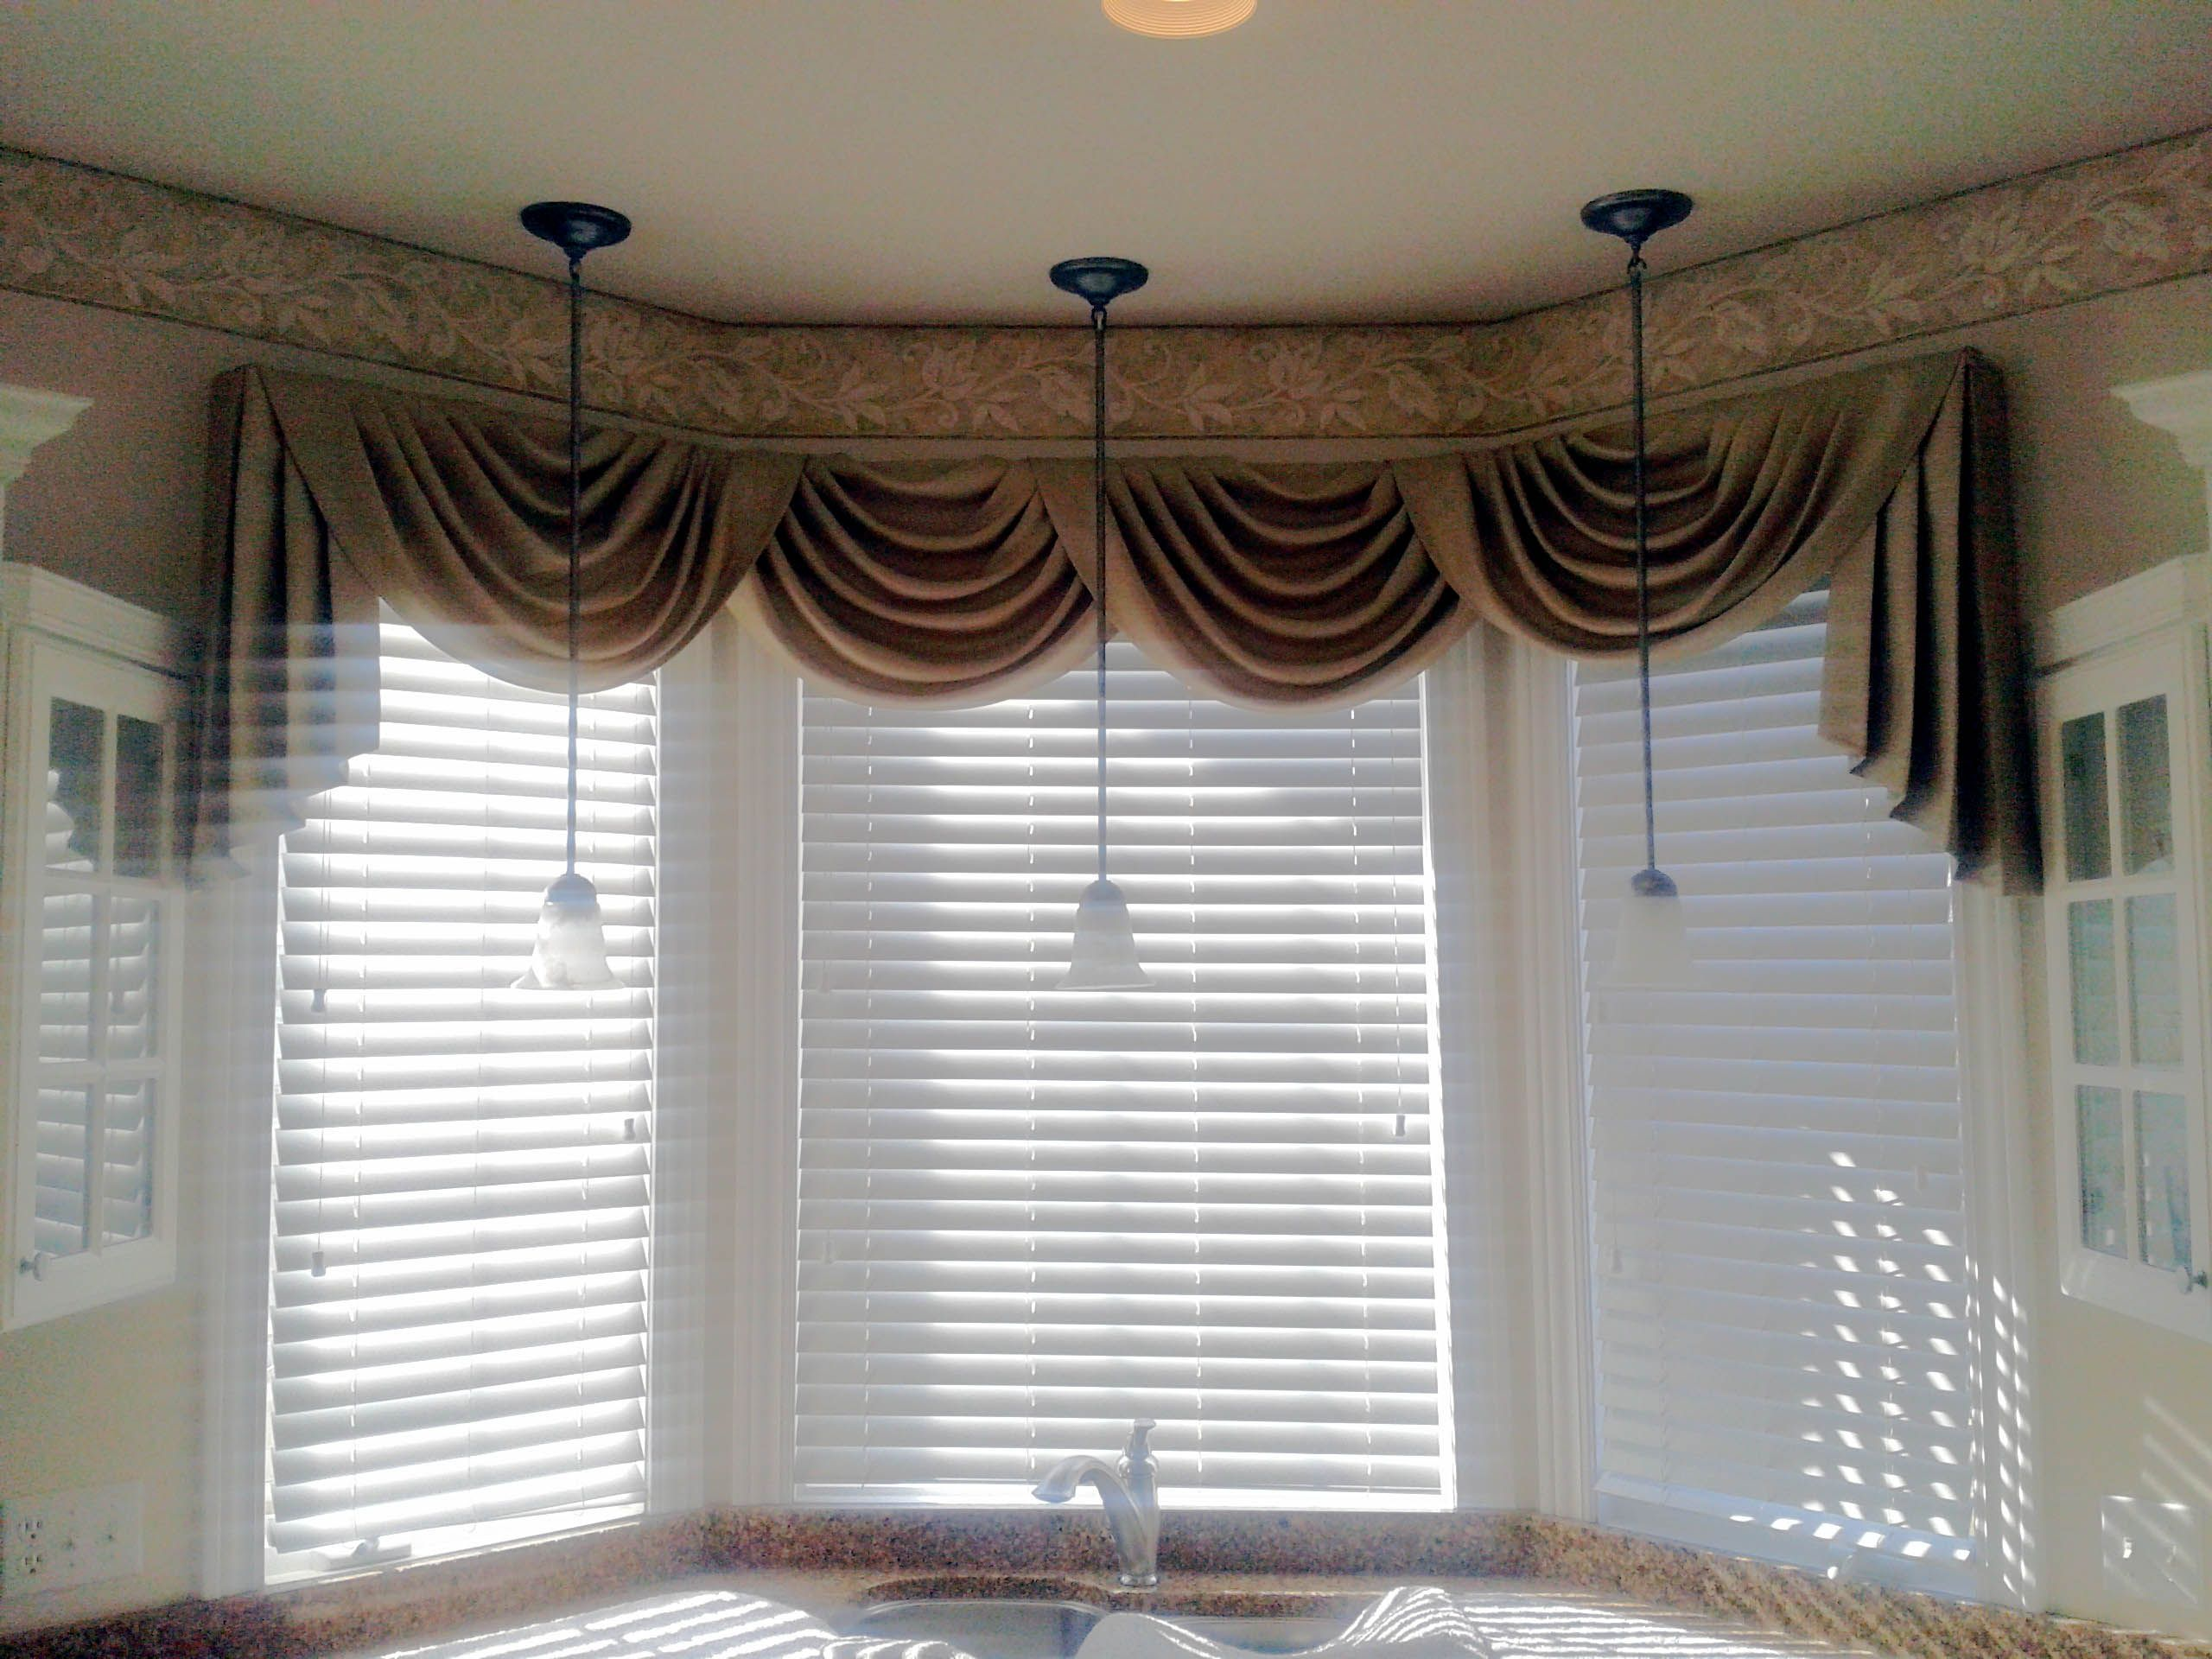 Swag Curtain Valance Over Wood Blinds